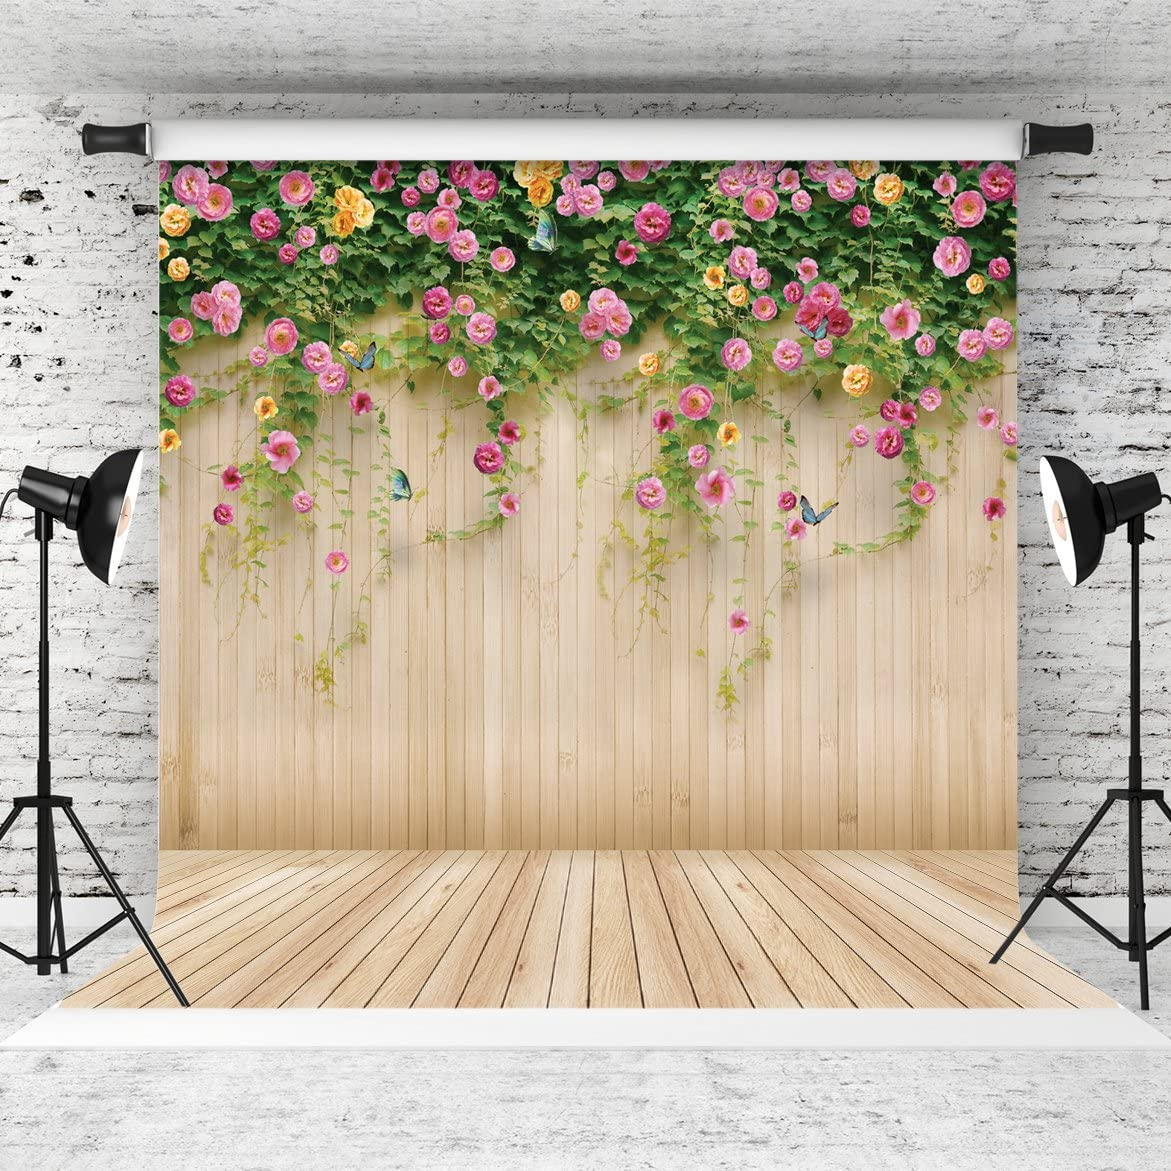 7x10 FT Vinyl Photography Backdrop,Flower Pattern with Colorful Arrangement of Spring Blooms Ornate Petals Composition Background for Child Baby Shower Photo Studio Prop Photobooth Photoshoot